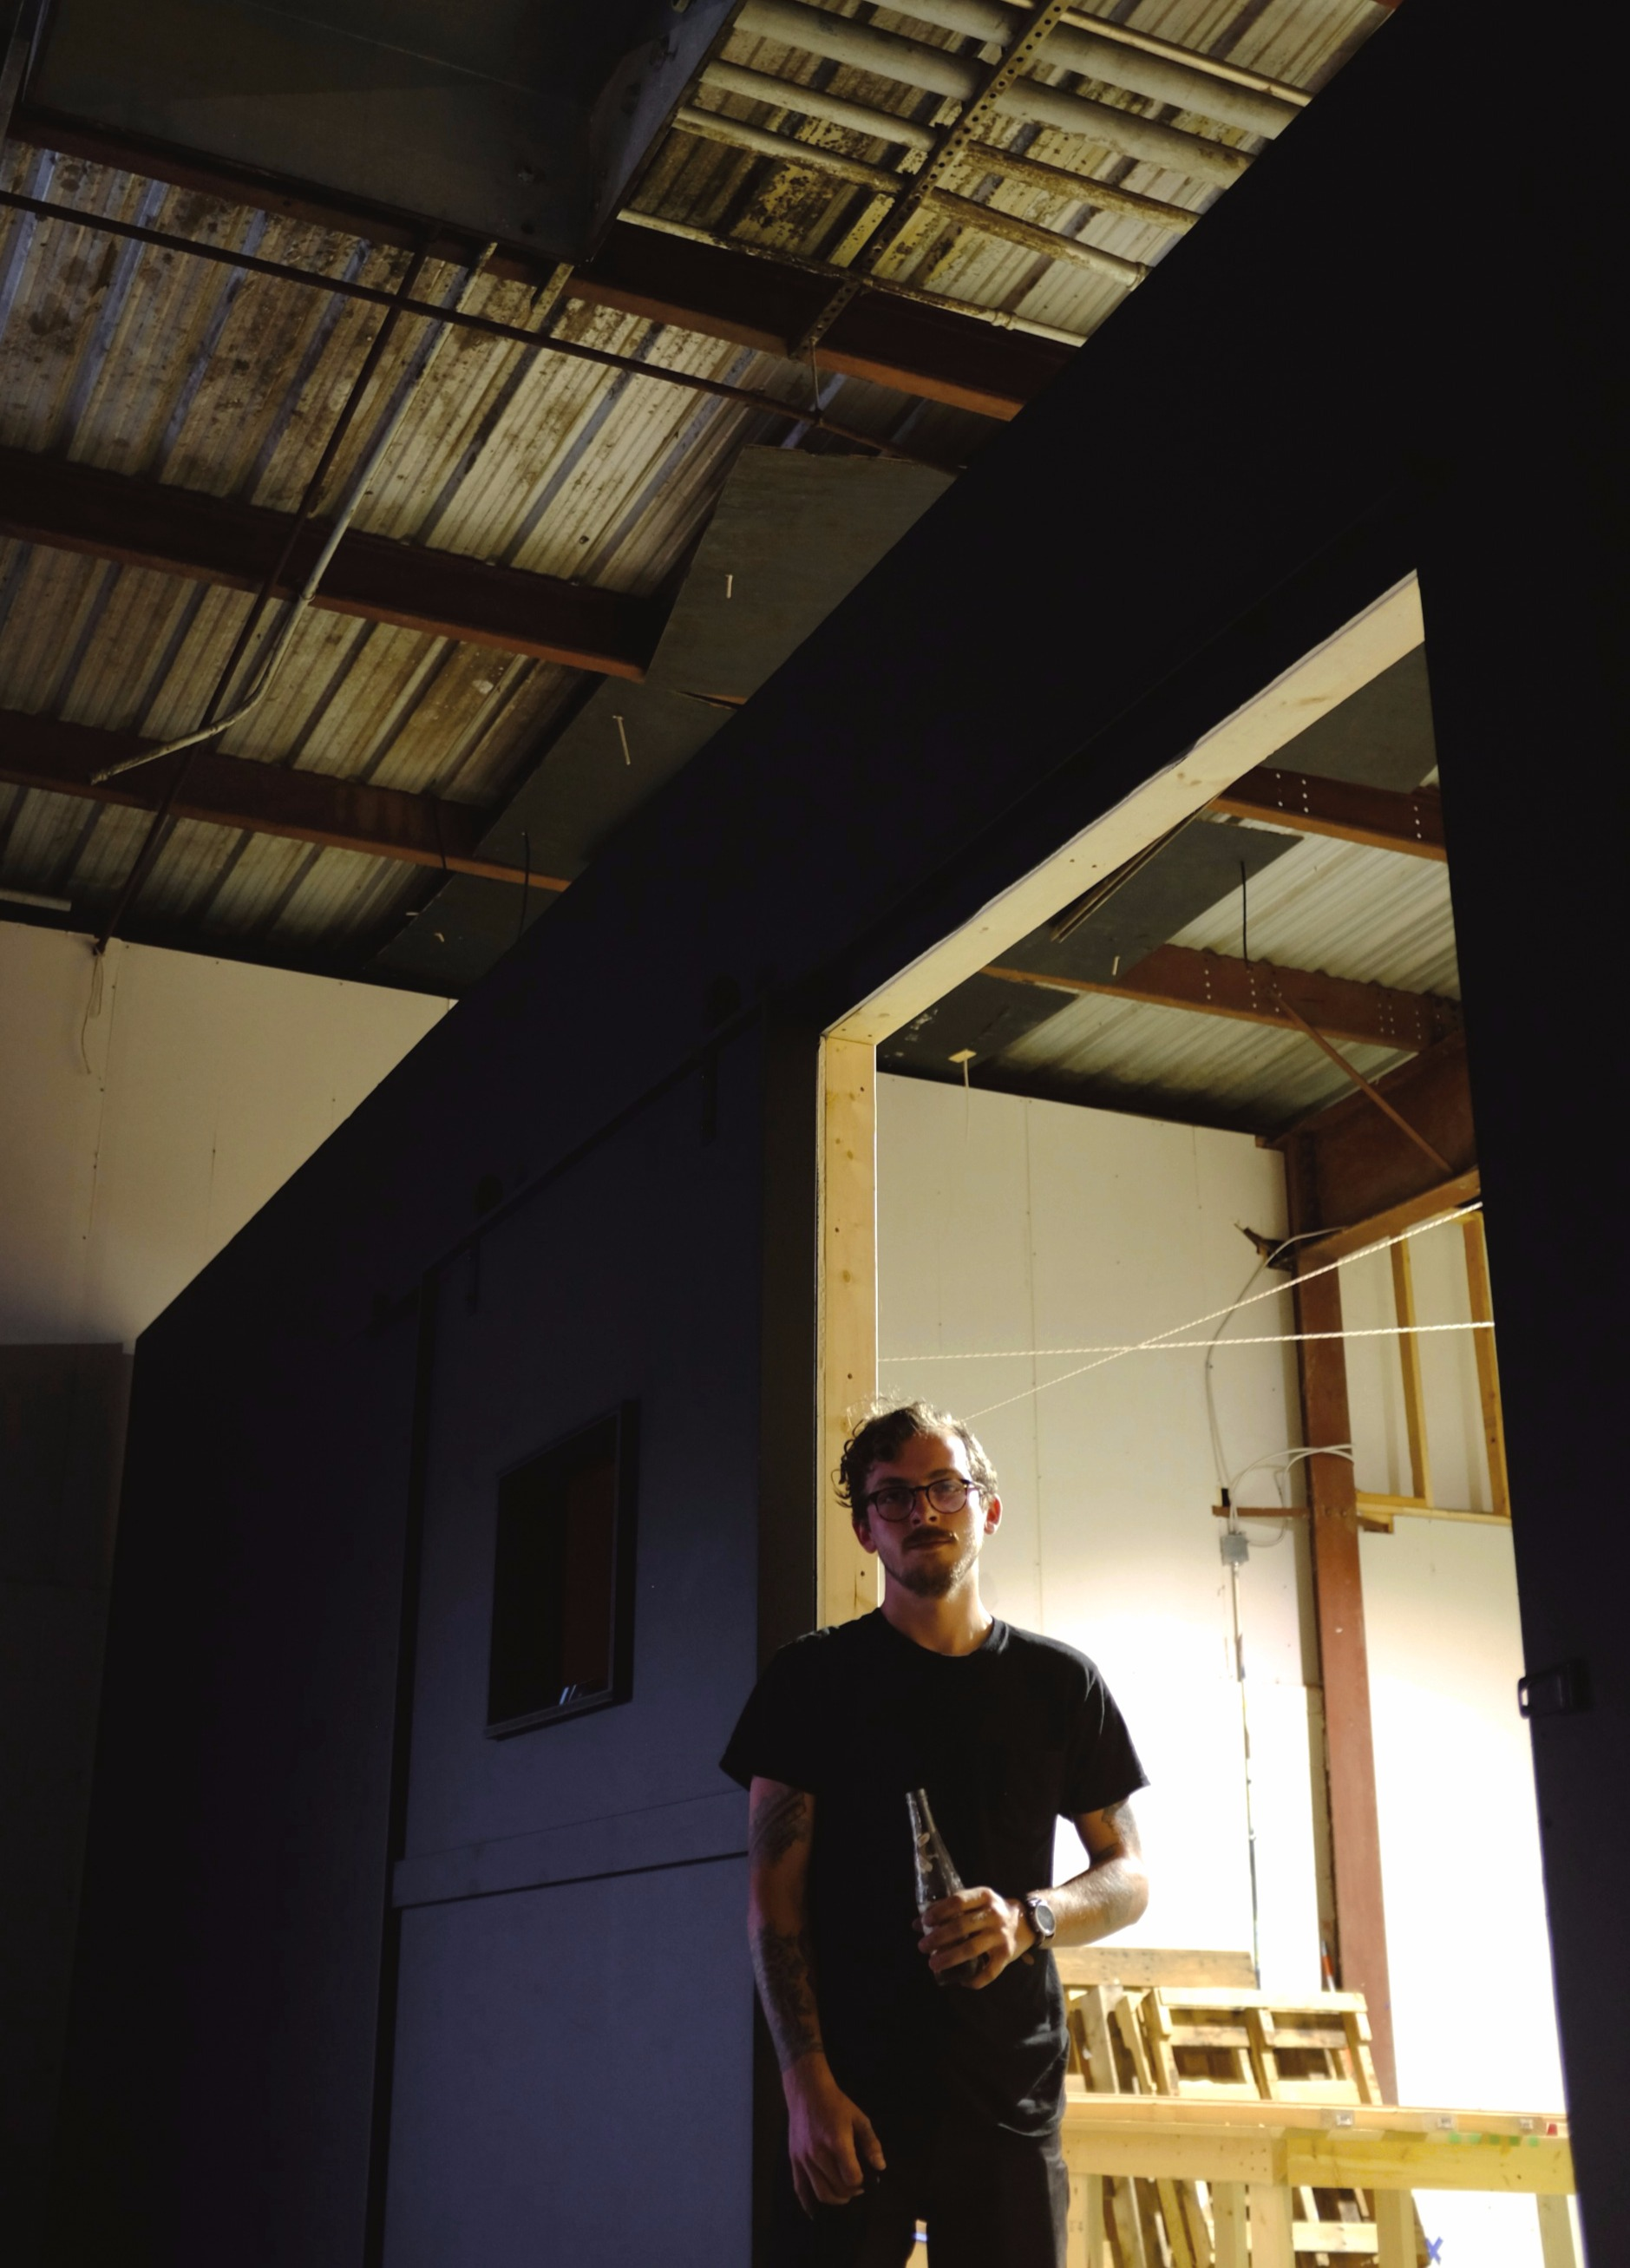 Mason Bovender, the designer and builder behind a creative company called Ninepound, stands at the entrance of his workshop space at The Bakery.